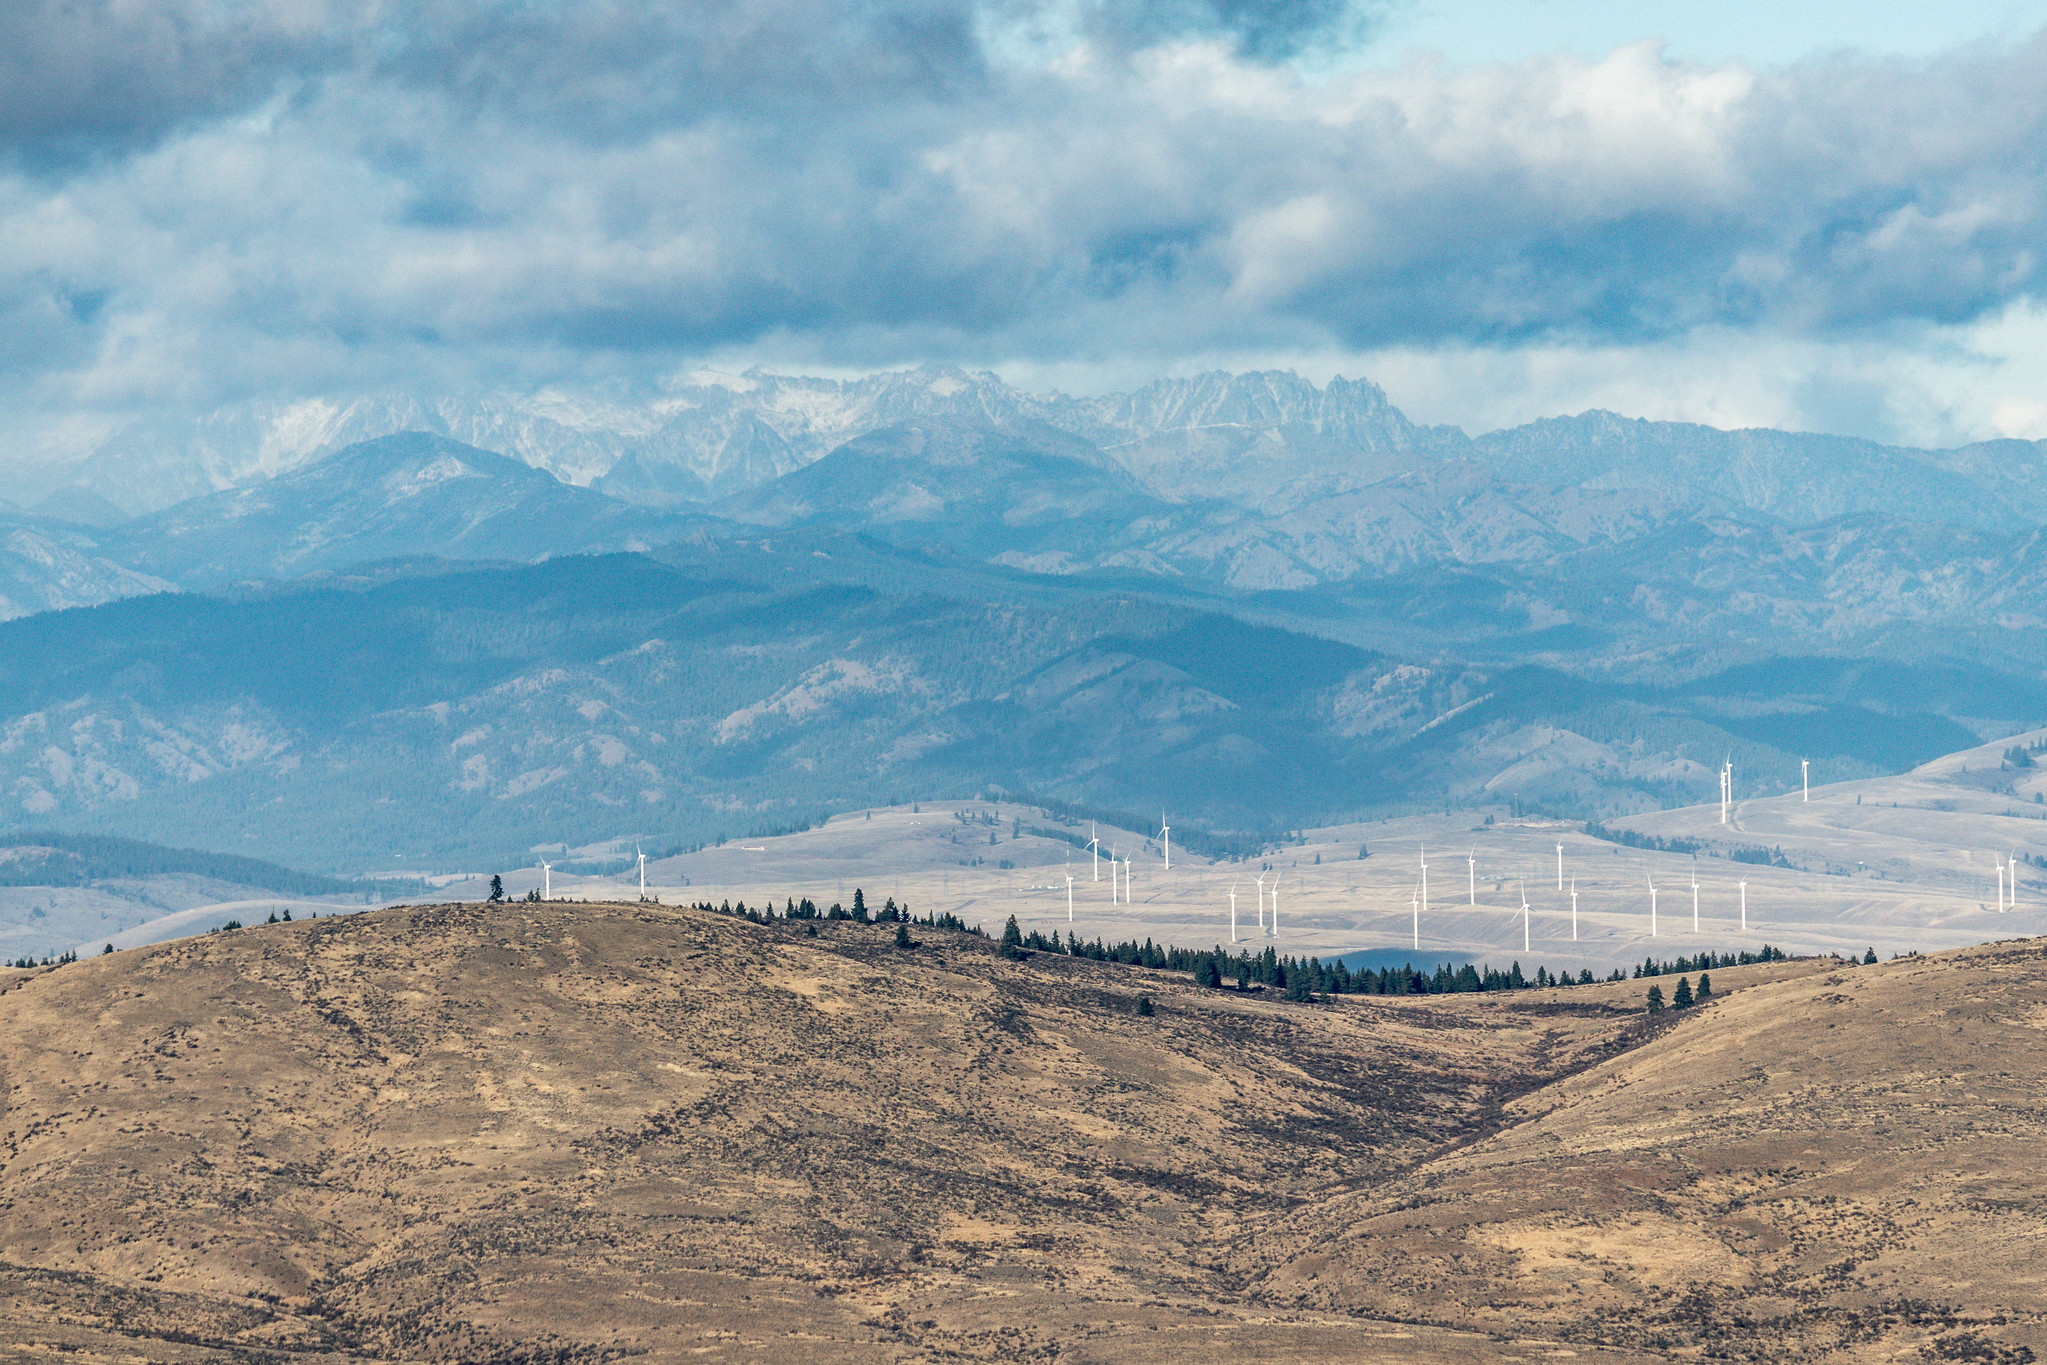 The Cascades and wind turbines